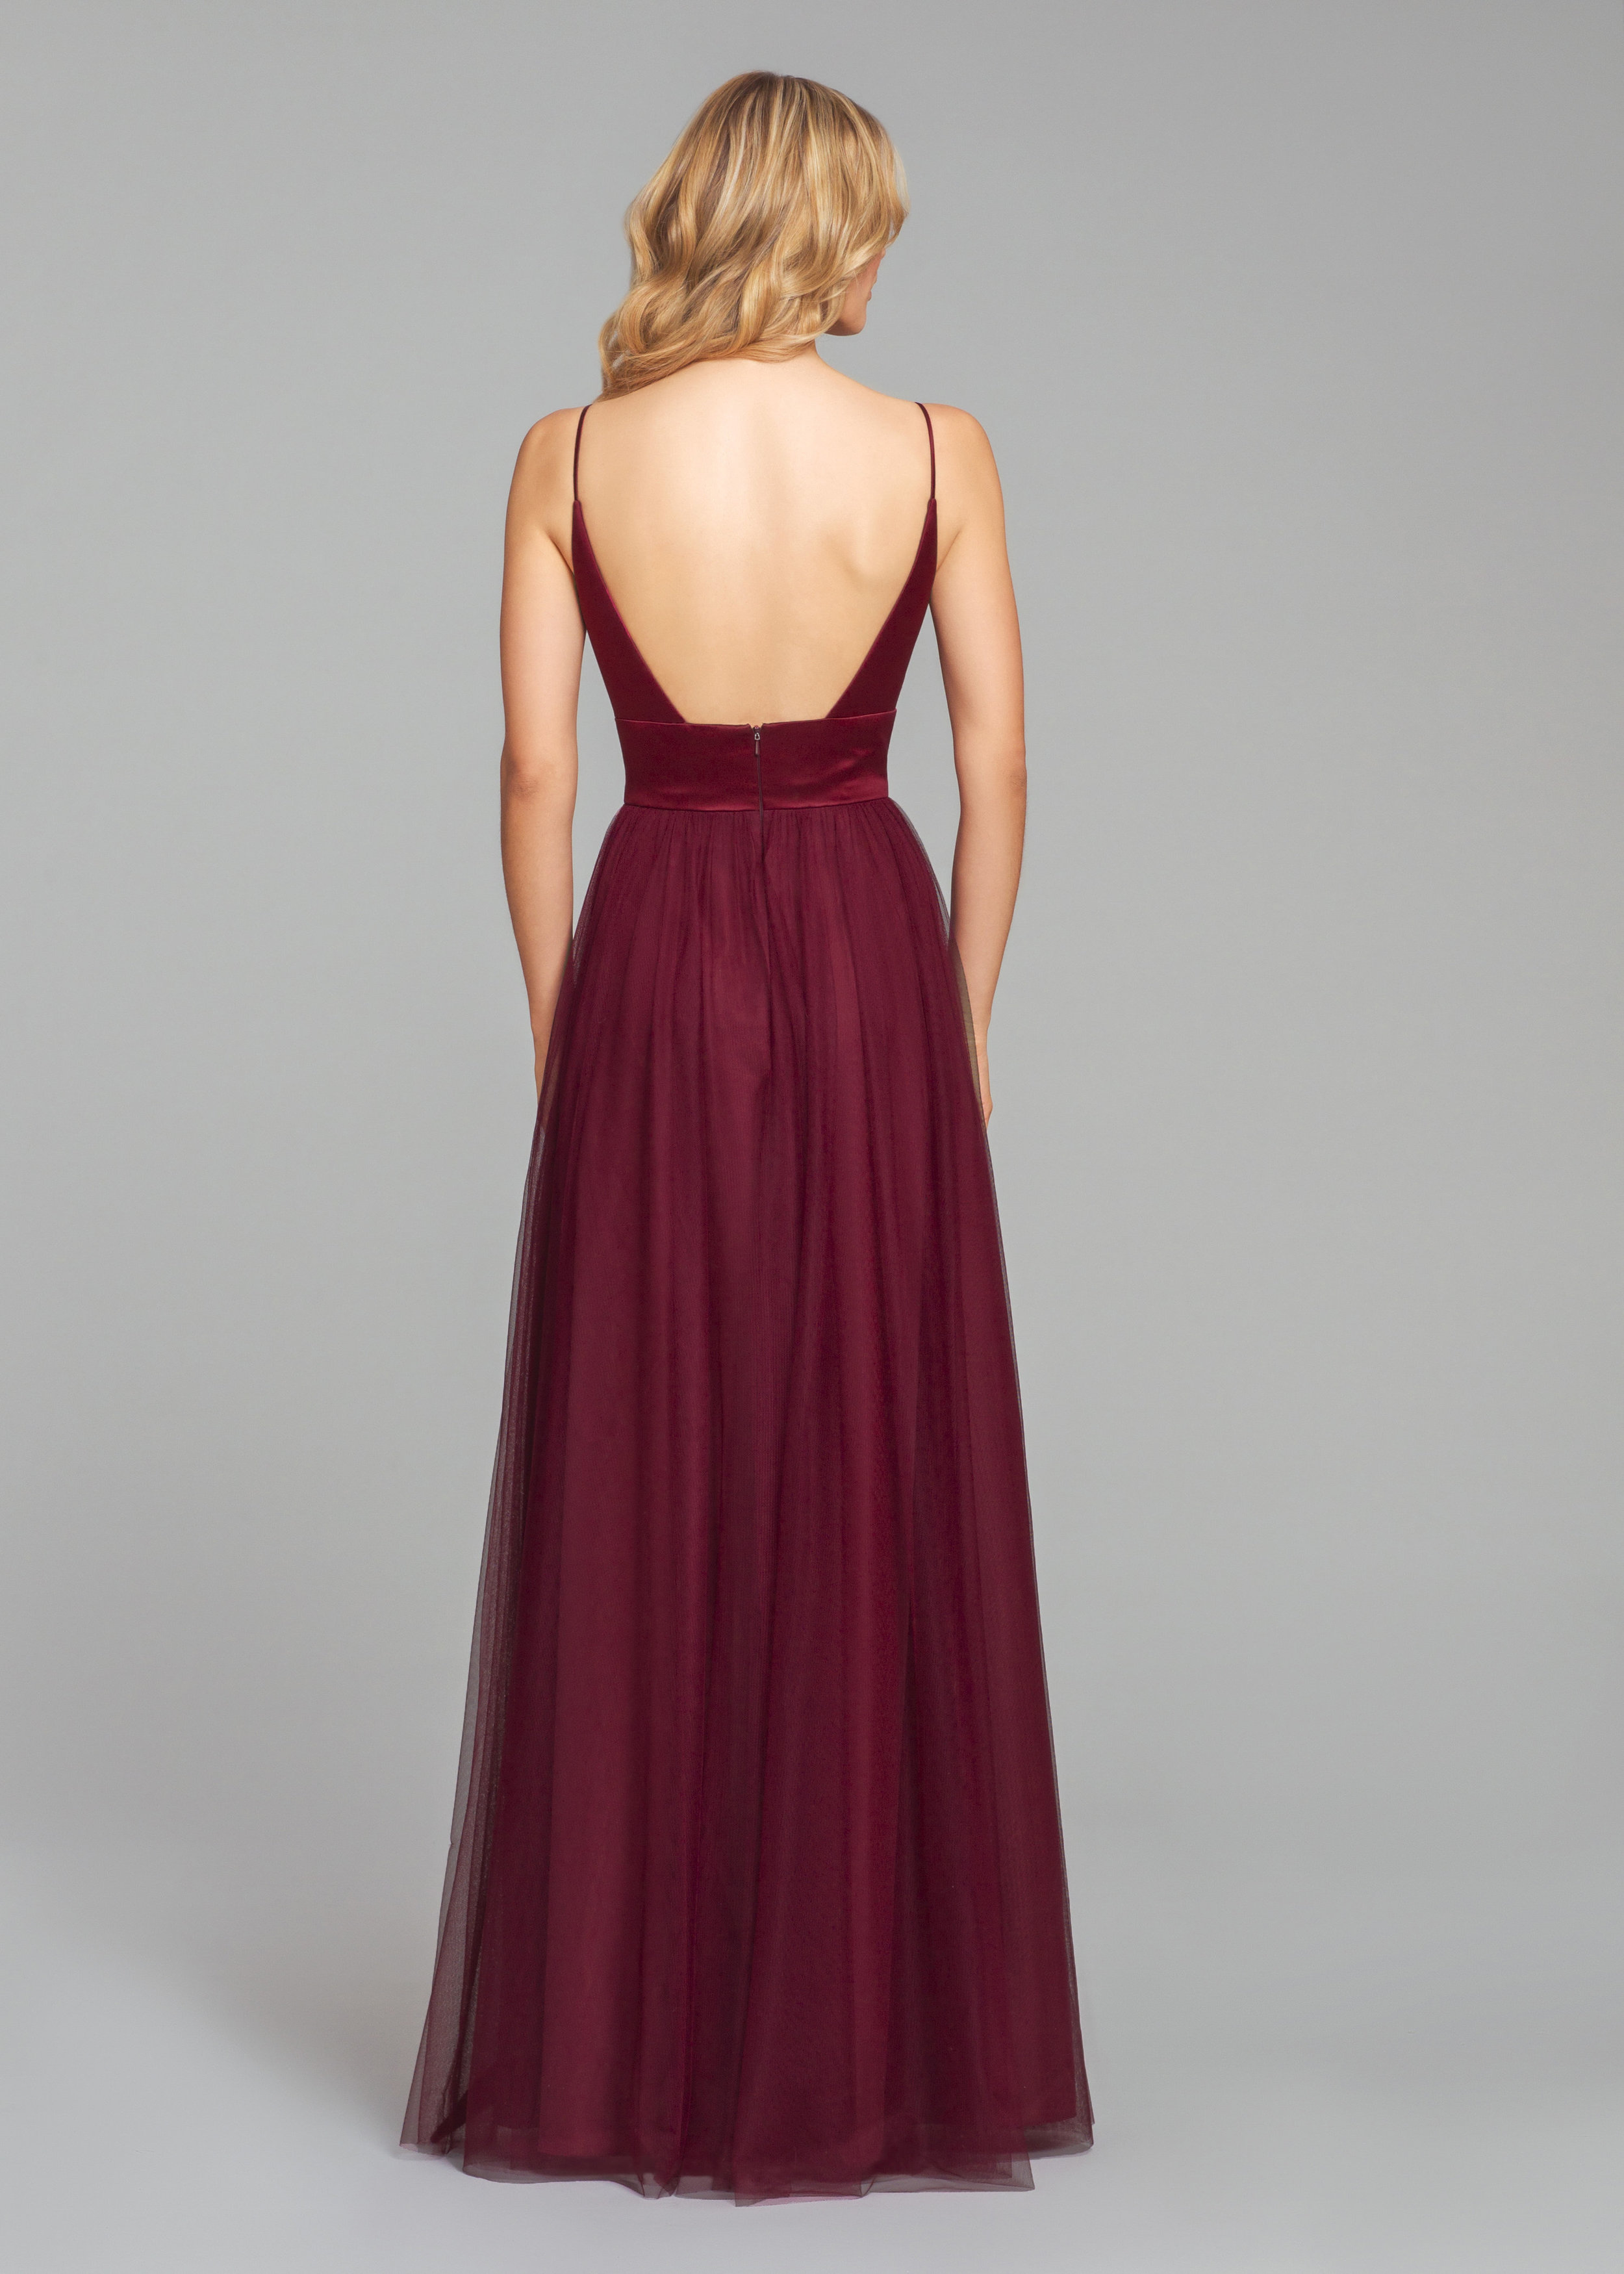 Back detail of style 5856 by Hayley Paige Occasions Bridesmaids